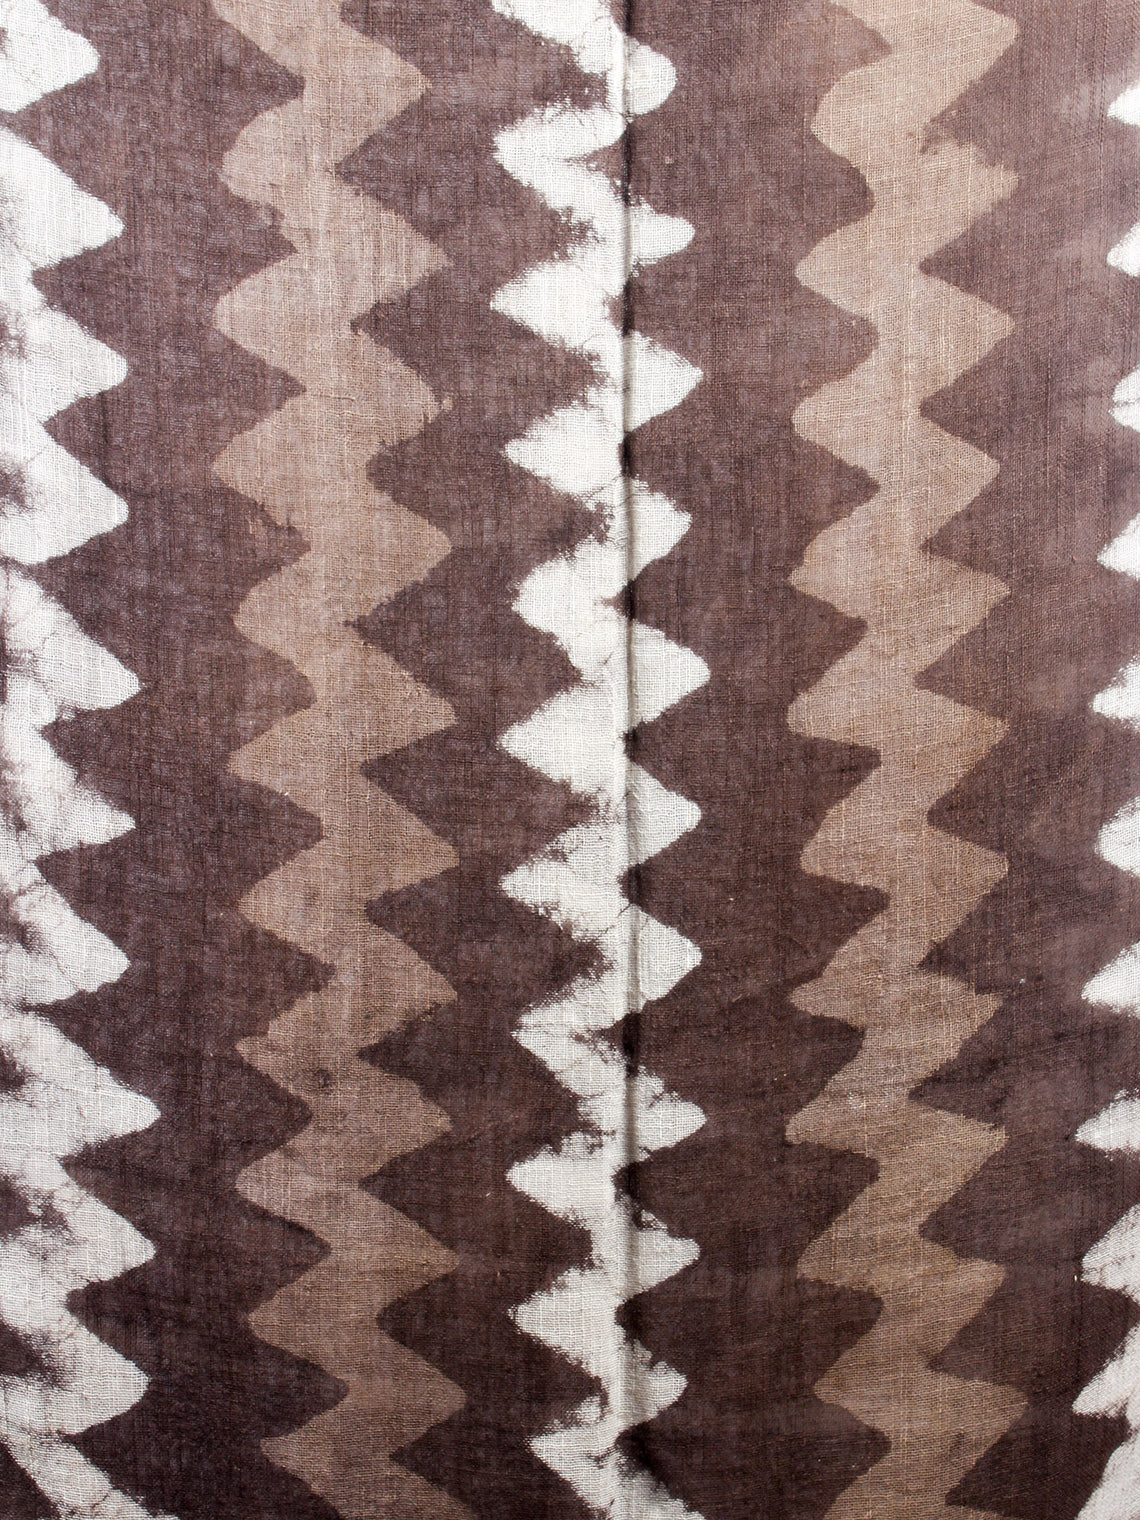 Brown Bagru Hand Printed Handloom Cotton Stole- S6317006